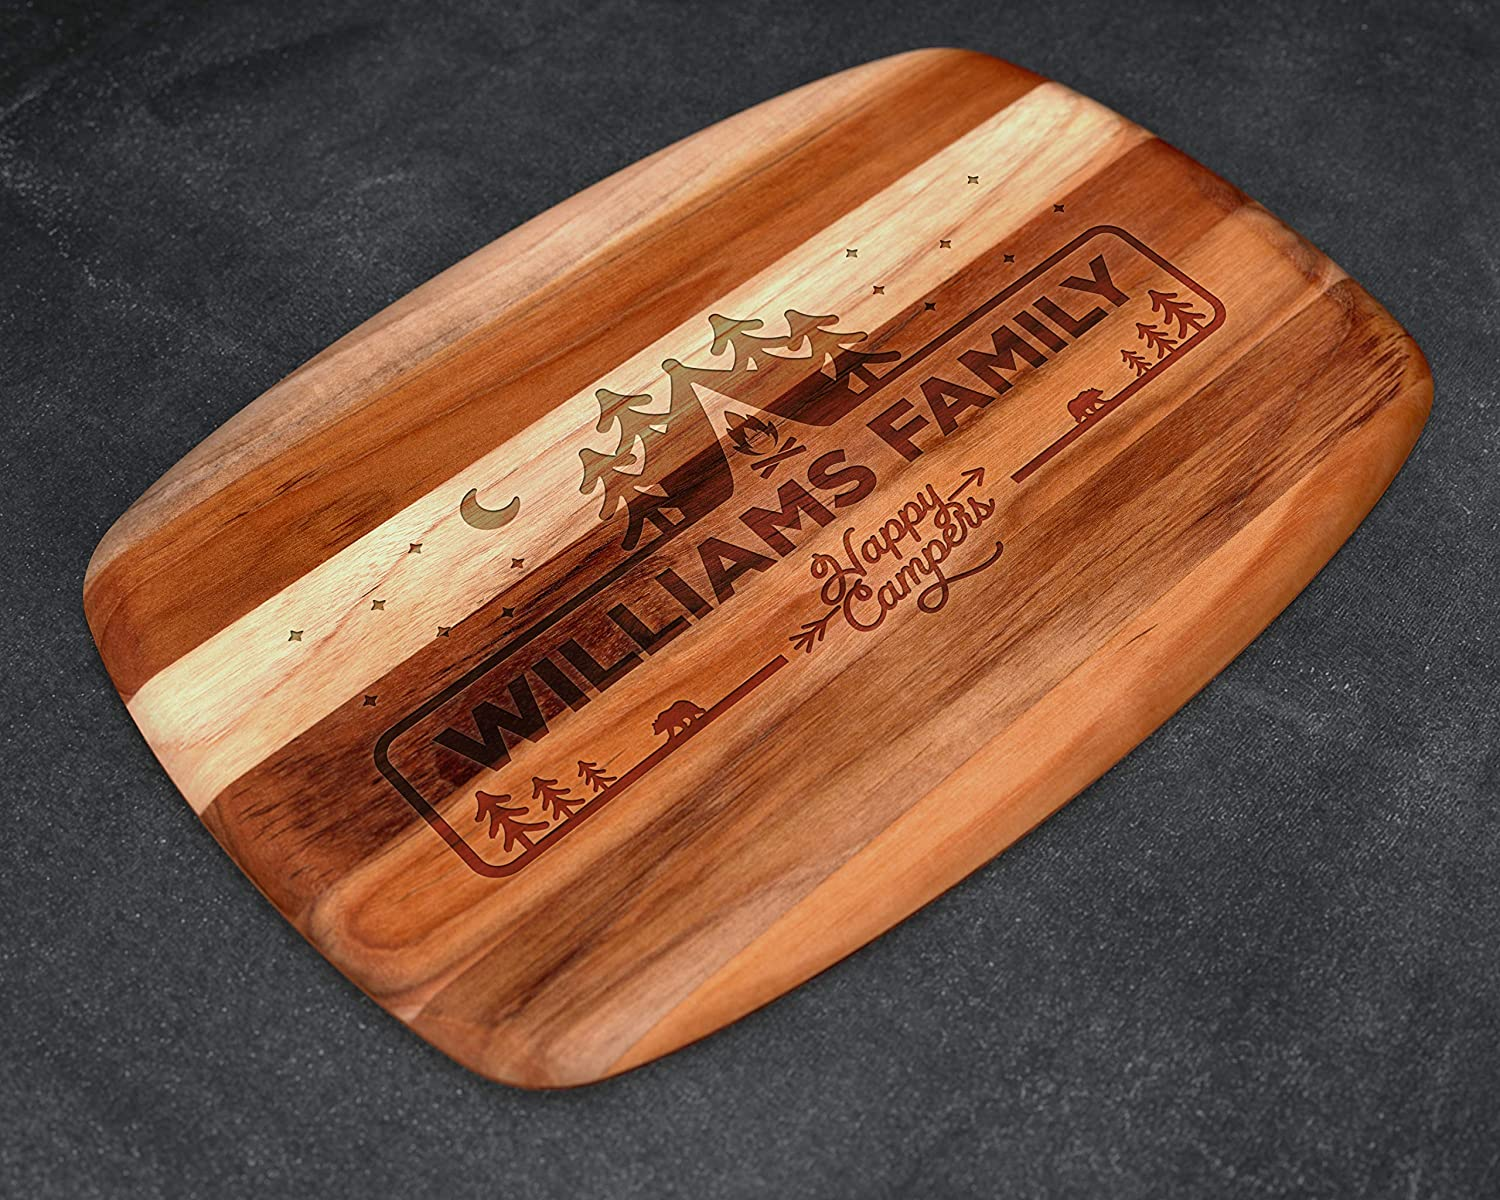 Camping Gift Camping Gifts Camping Decor Christmas Gift for Him Camping Sign Happy Campers Camping Gear Husband Gift Dad Gifts Personalized Teak Cutting Board gifts for him